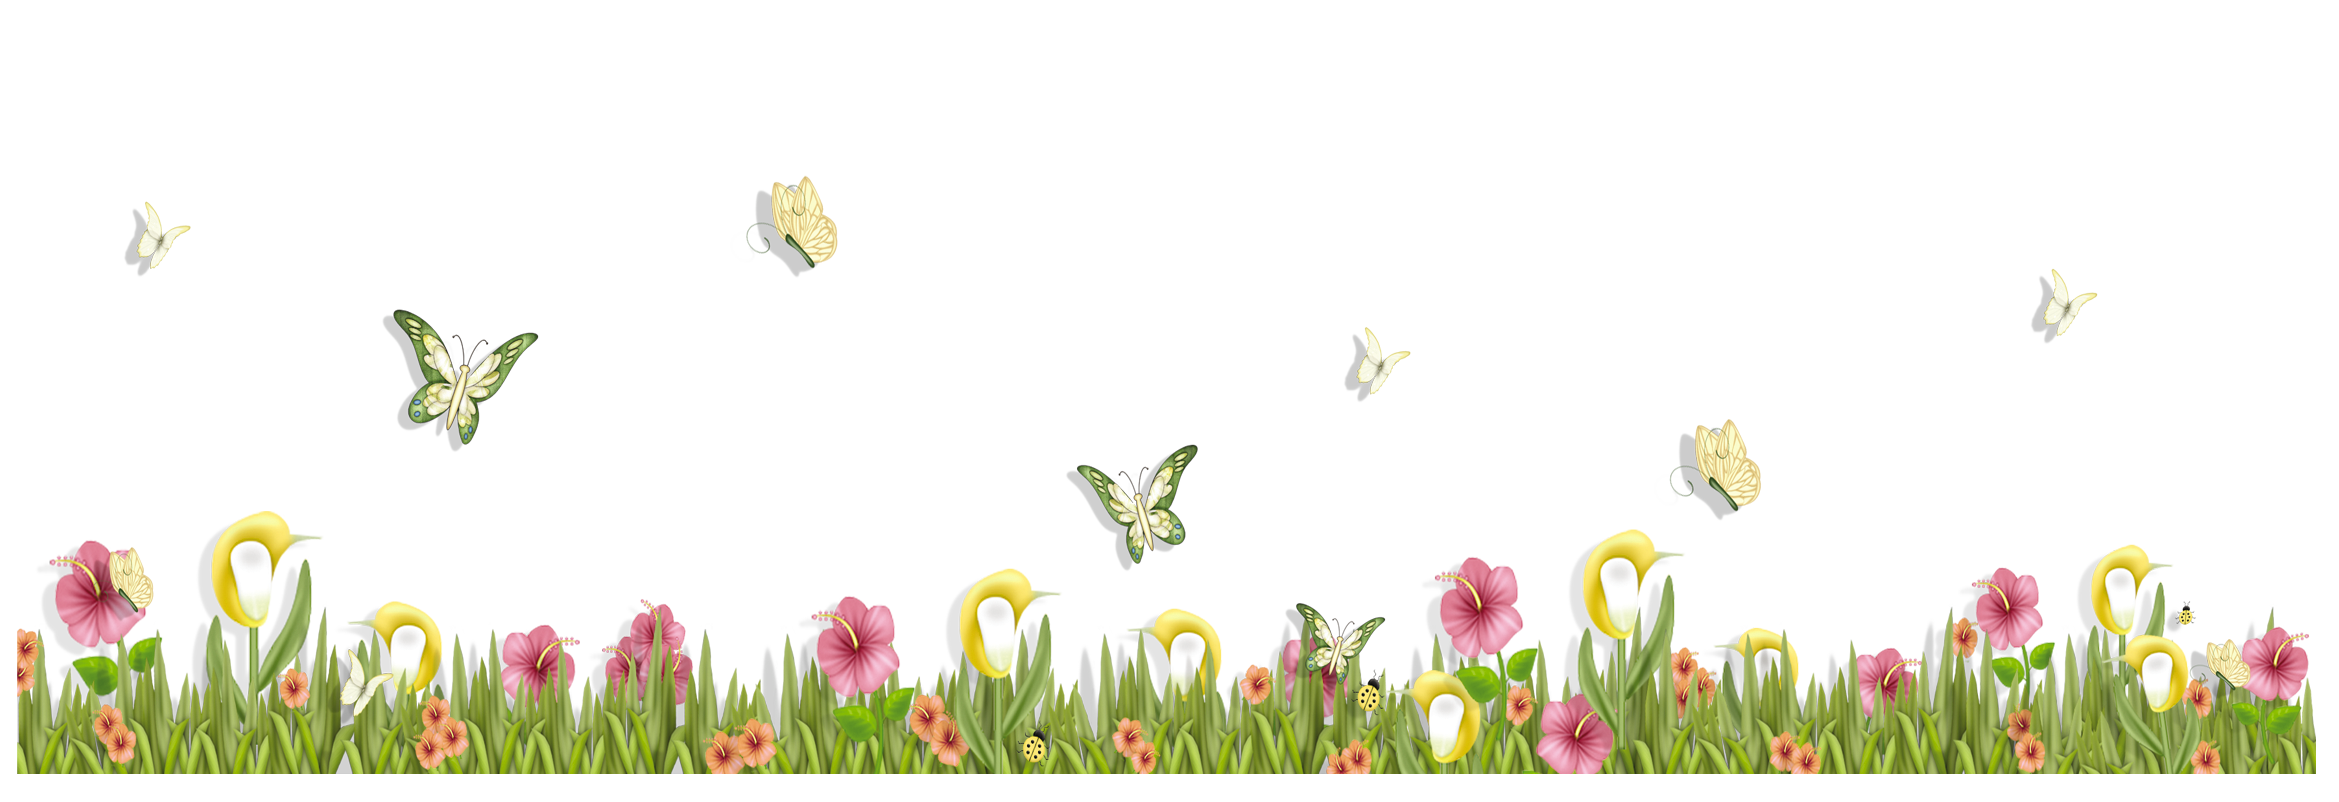 Grass clipart spring. With butterflies and flowers